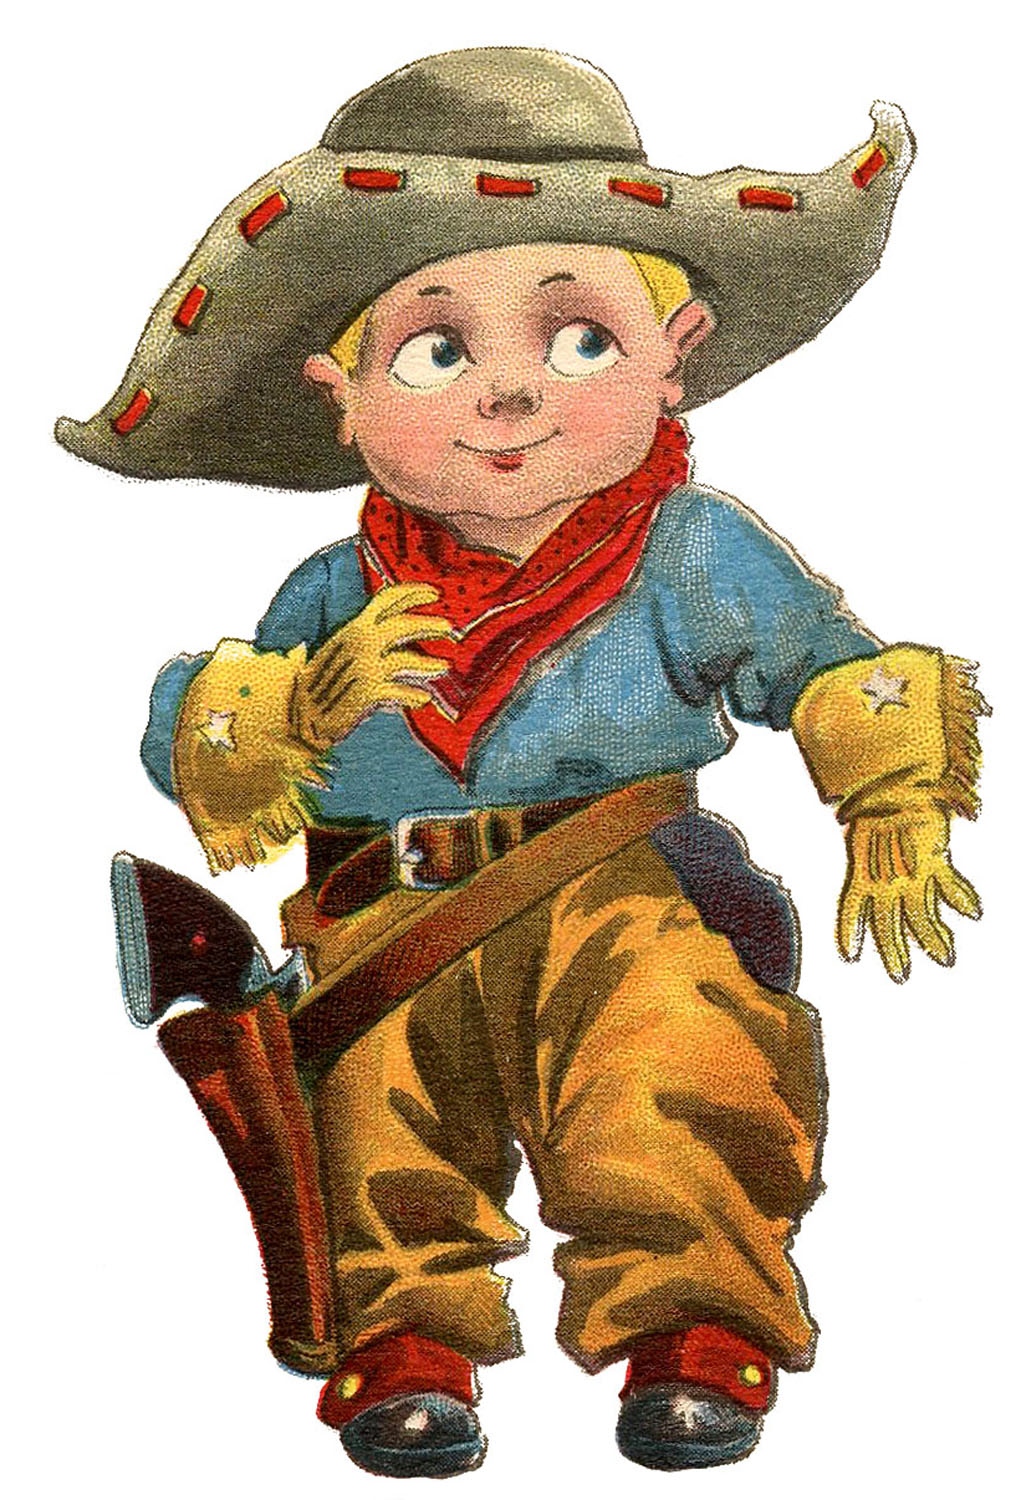 Cowboy Clip Art Image little blond boy dressed as a cowboy in a ...